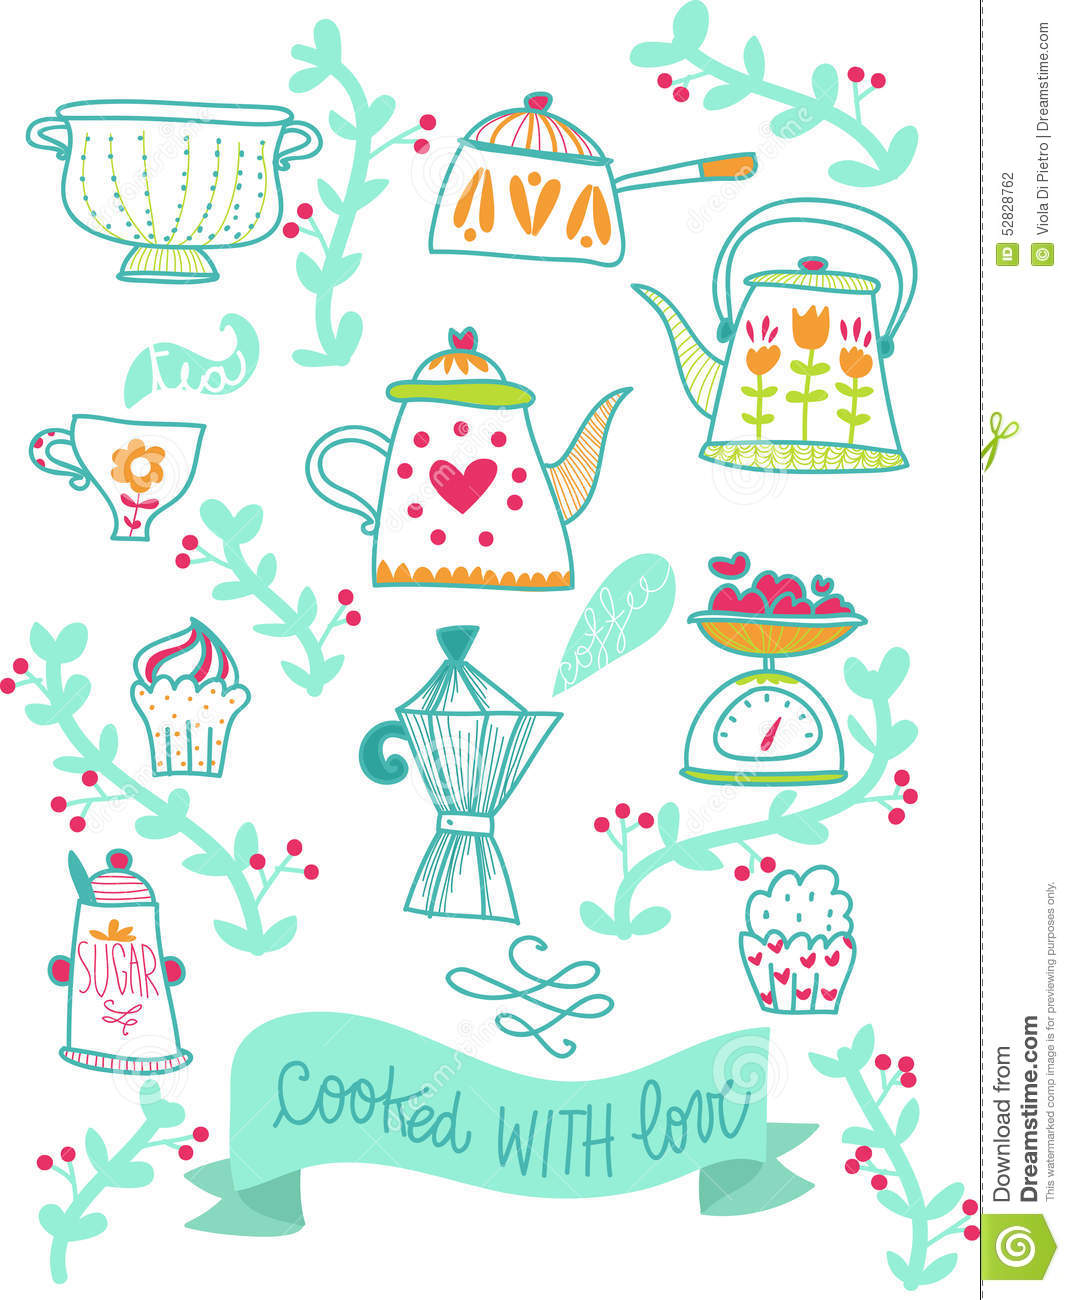 Book Cover Illustration Fee ~ Recipes retro kitchen illustration stock